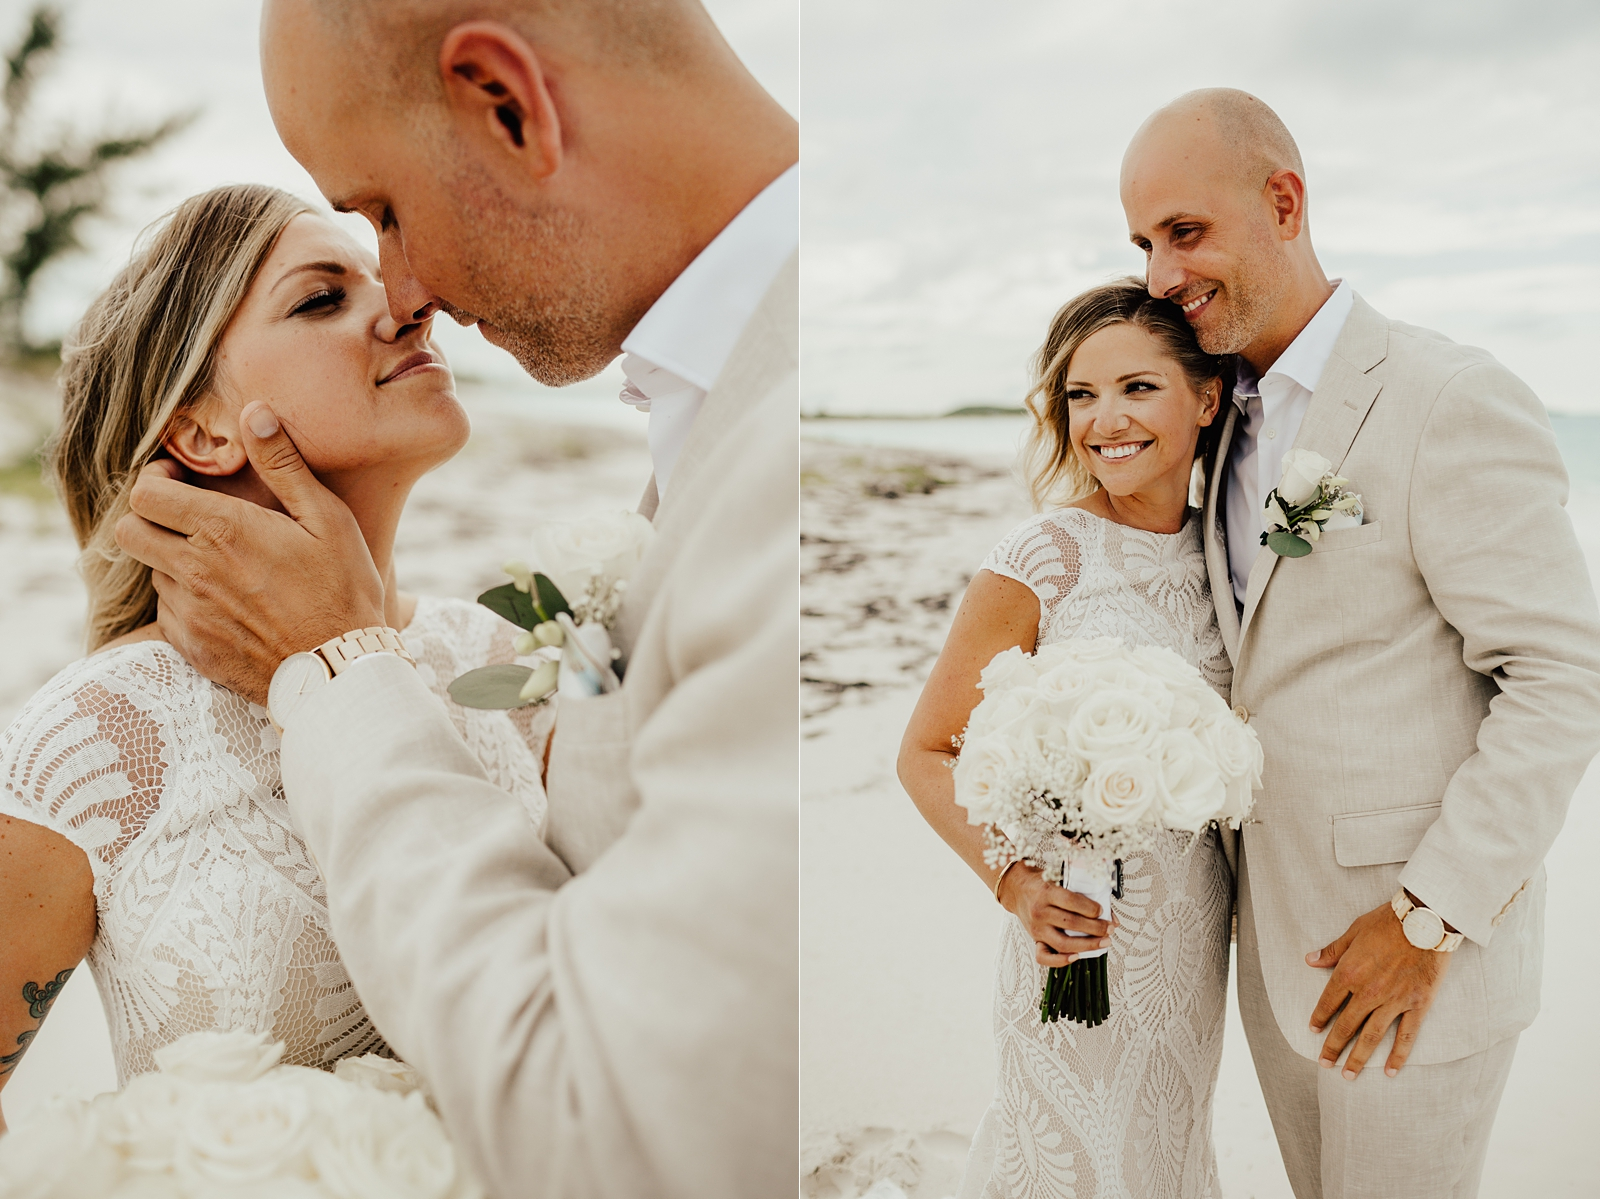 Jenni & Andrew Intimate Beach Destination Wedding in Little Exuma, Bahamas_0487.jpg